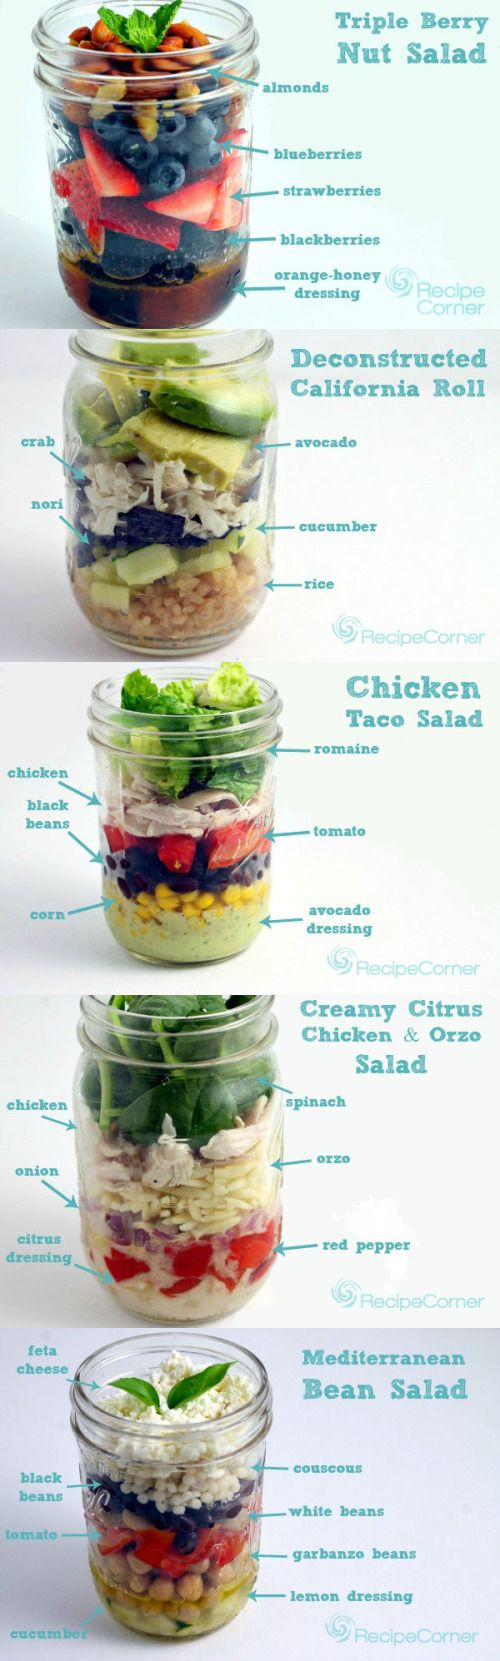 5 Affordable Mason Jar Salads Under 500 Calories…RECIPES Pinterest @ jennyrossxo ♡